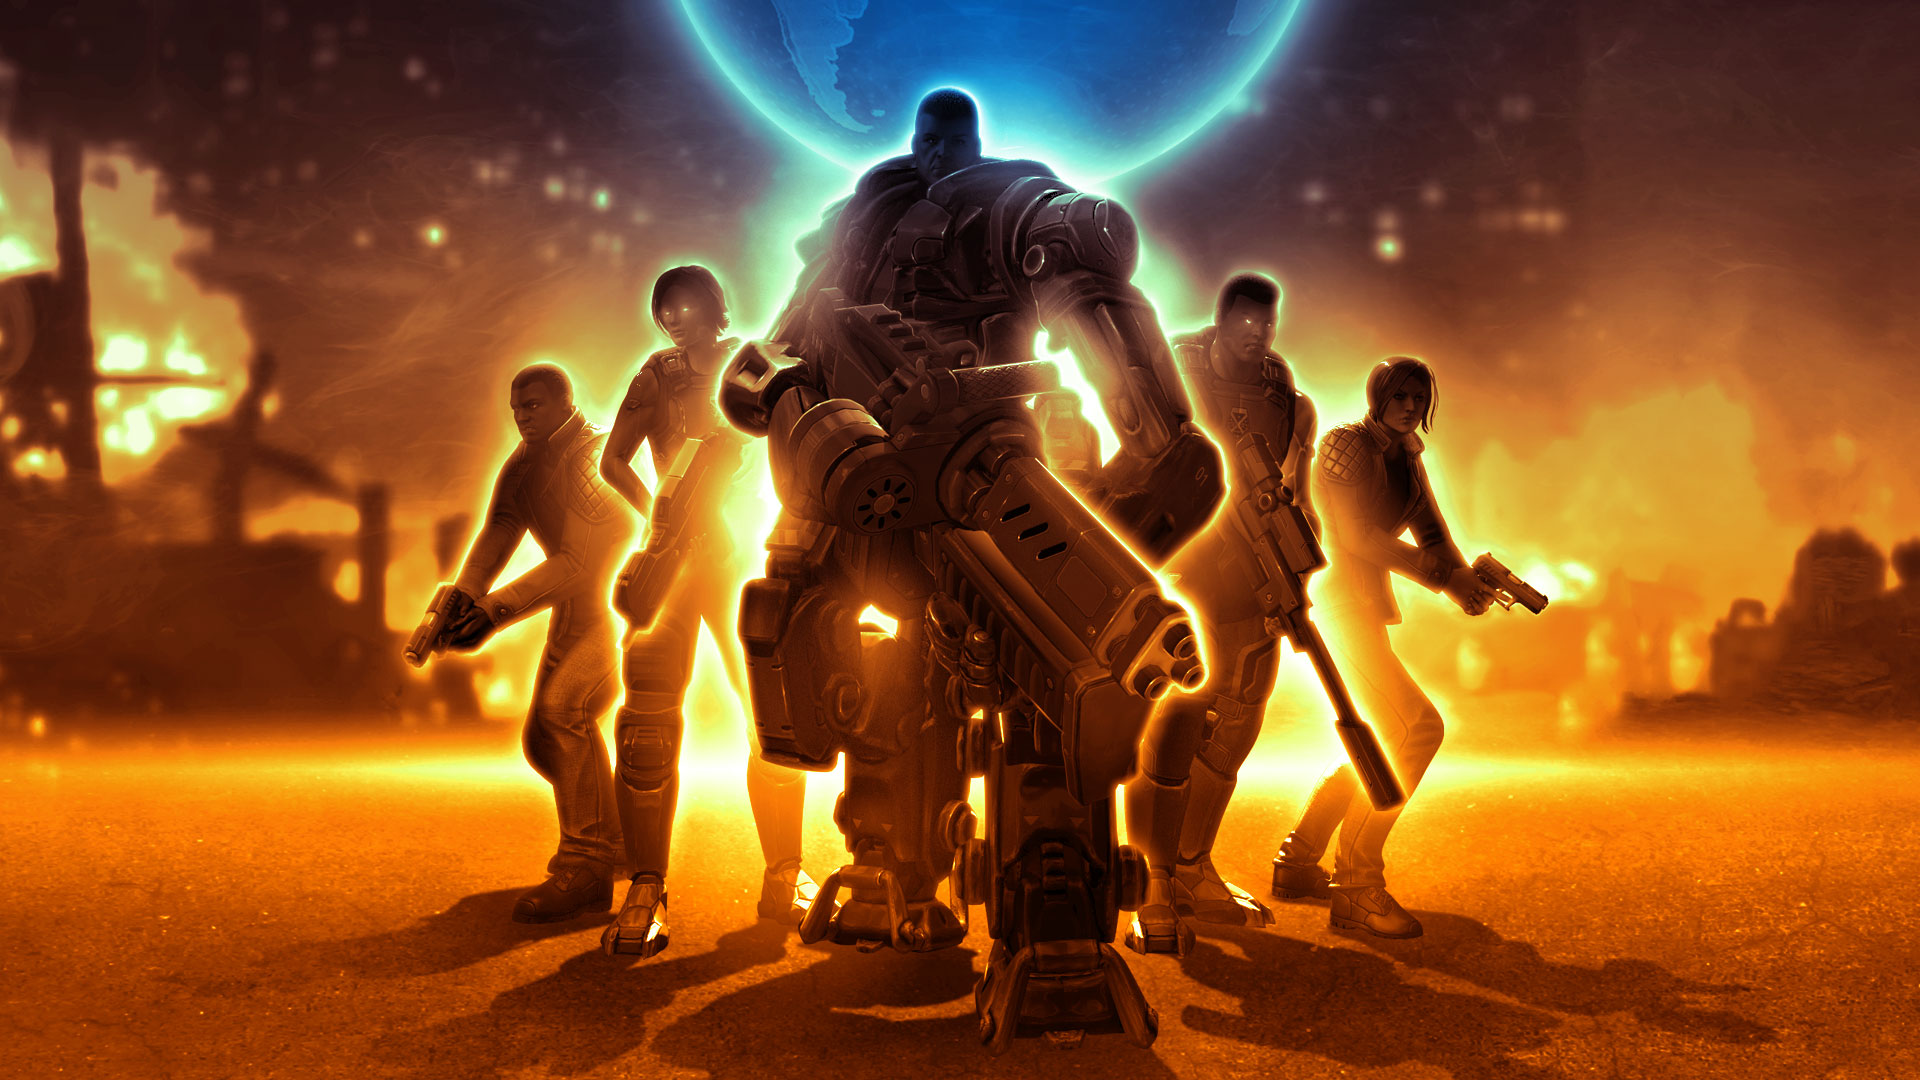 XCOM: Enemy Within Now Available for Mobile Devices